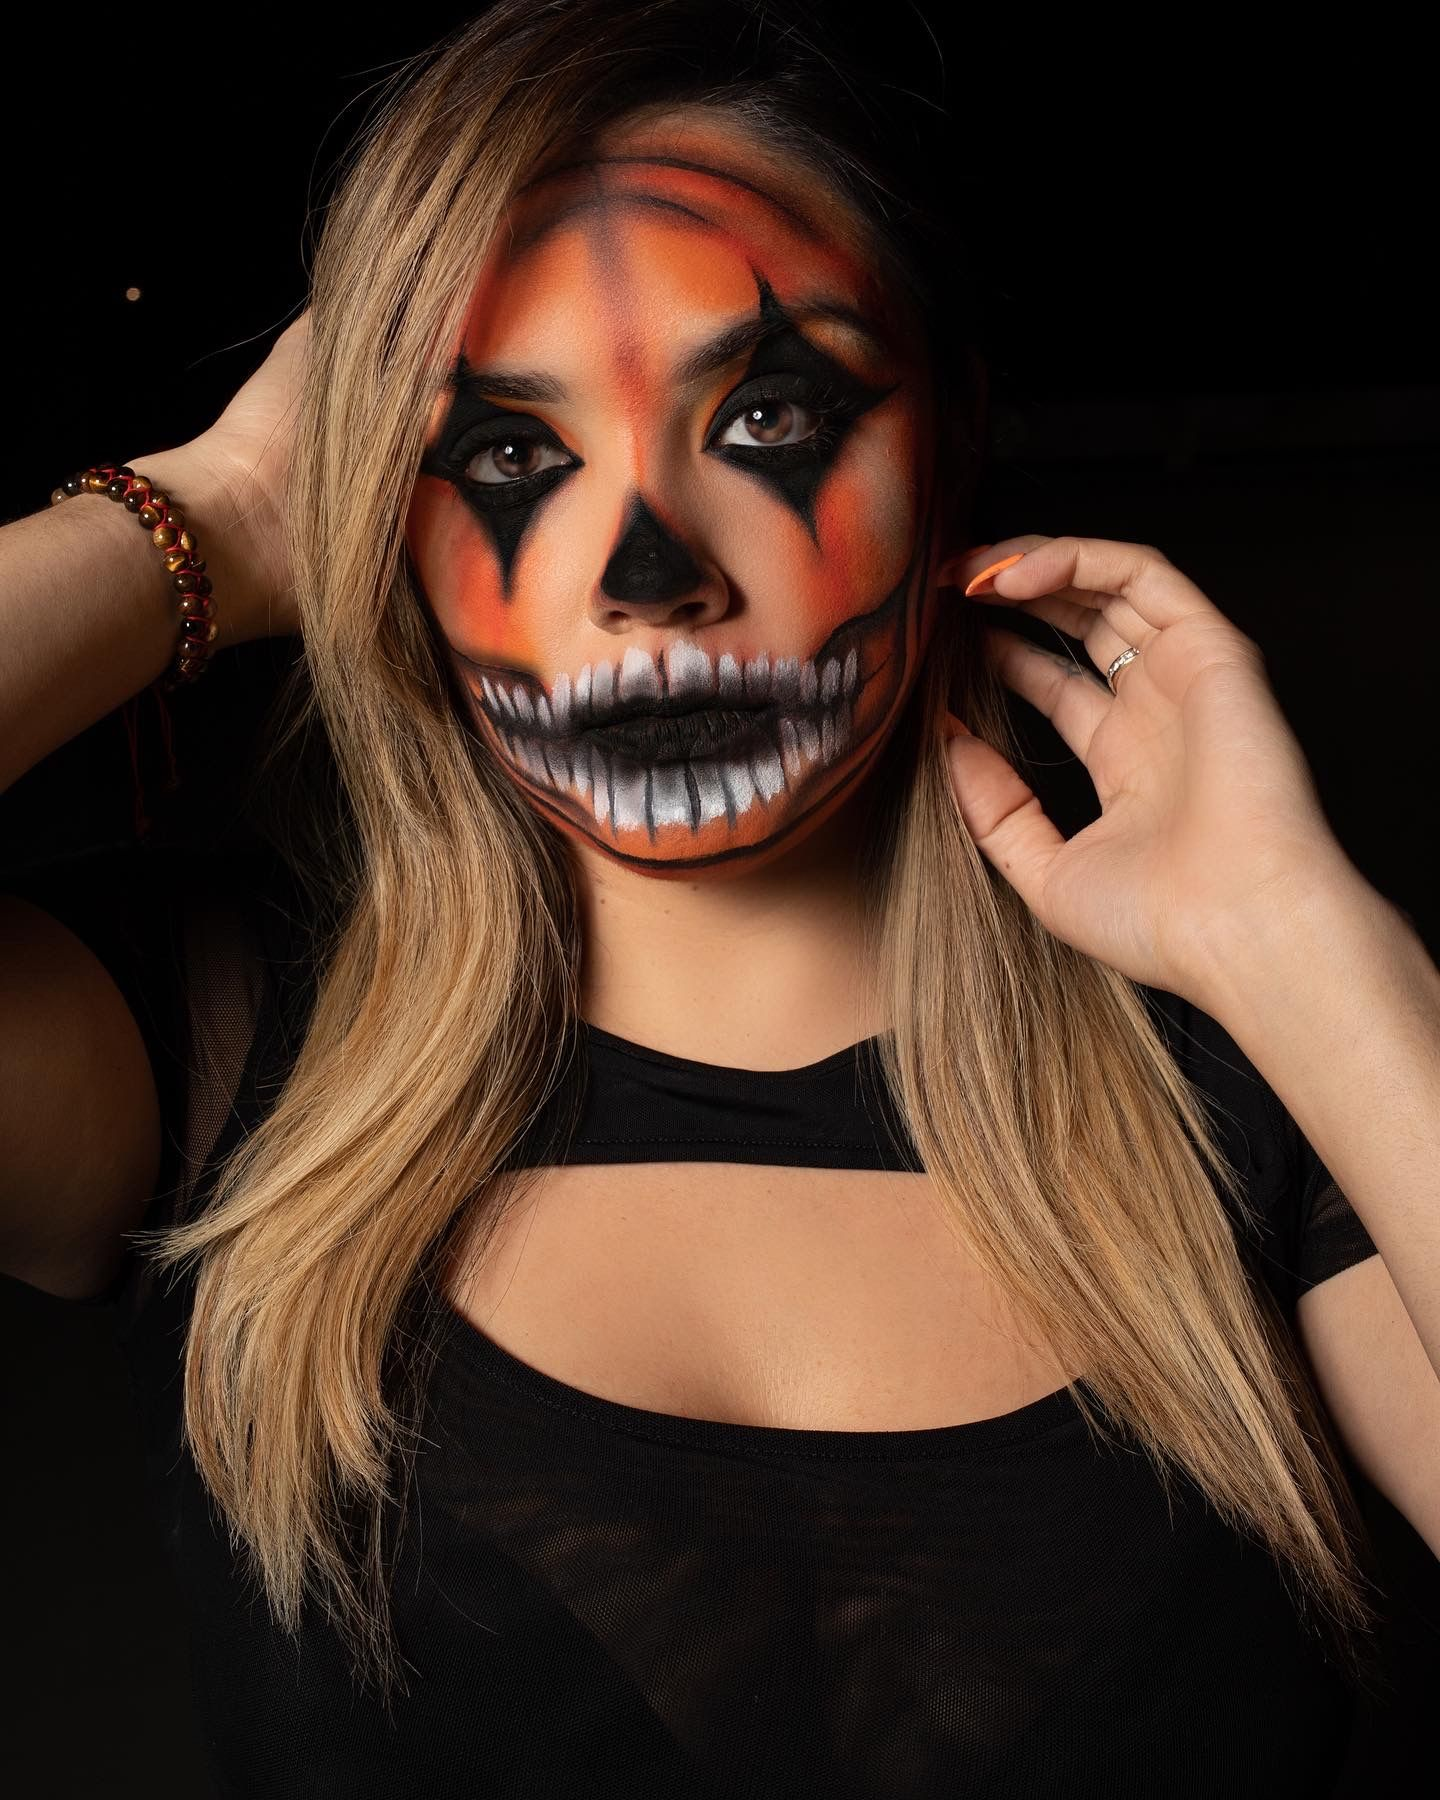 Skull Pumpkin Makeup! Make sure to tag me if you recreate